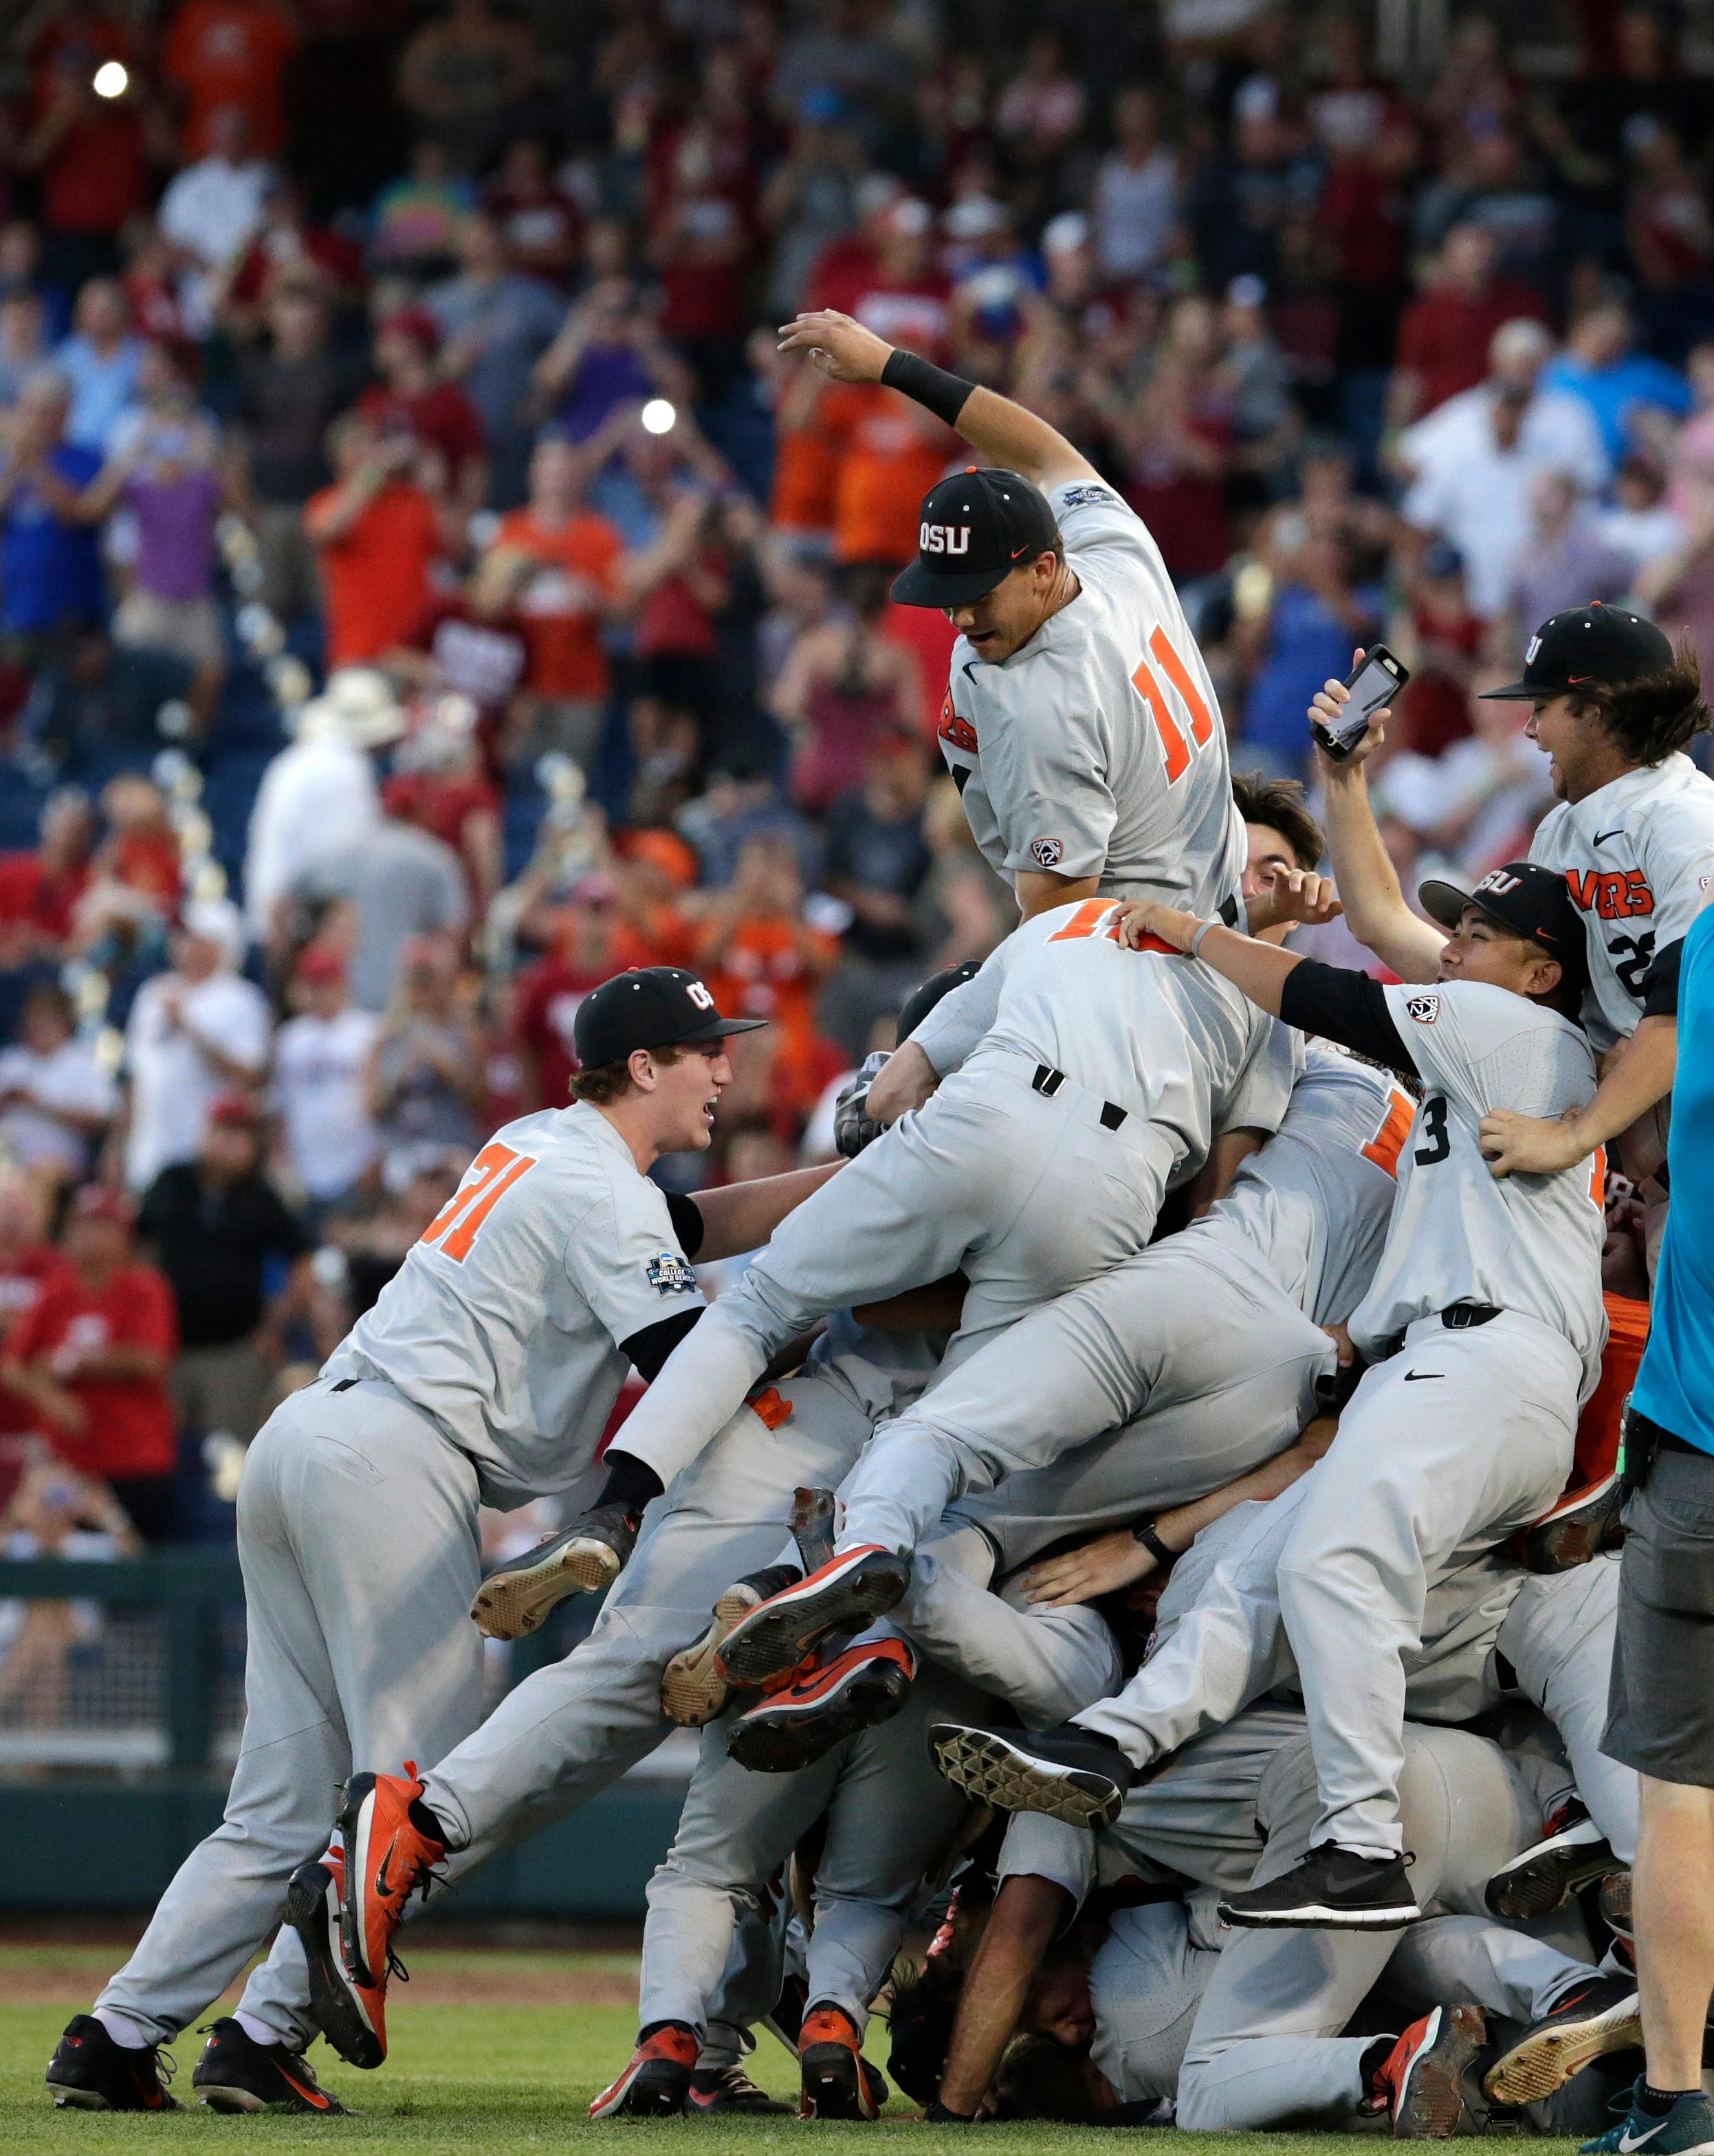 Oregon State players celebrate after they beat Arkansas 5-0 in Game 3 to win the NCAA College World Series baseball finals, Thursday, June 28, 2018, in Omaha, Neb. (AP Photo/Nati Harnik)